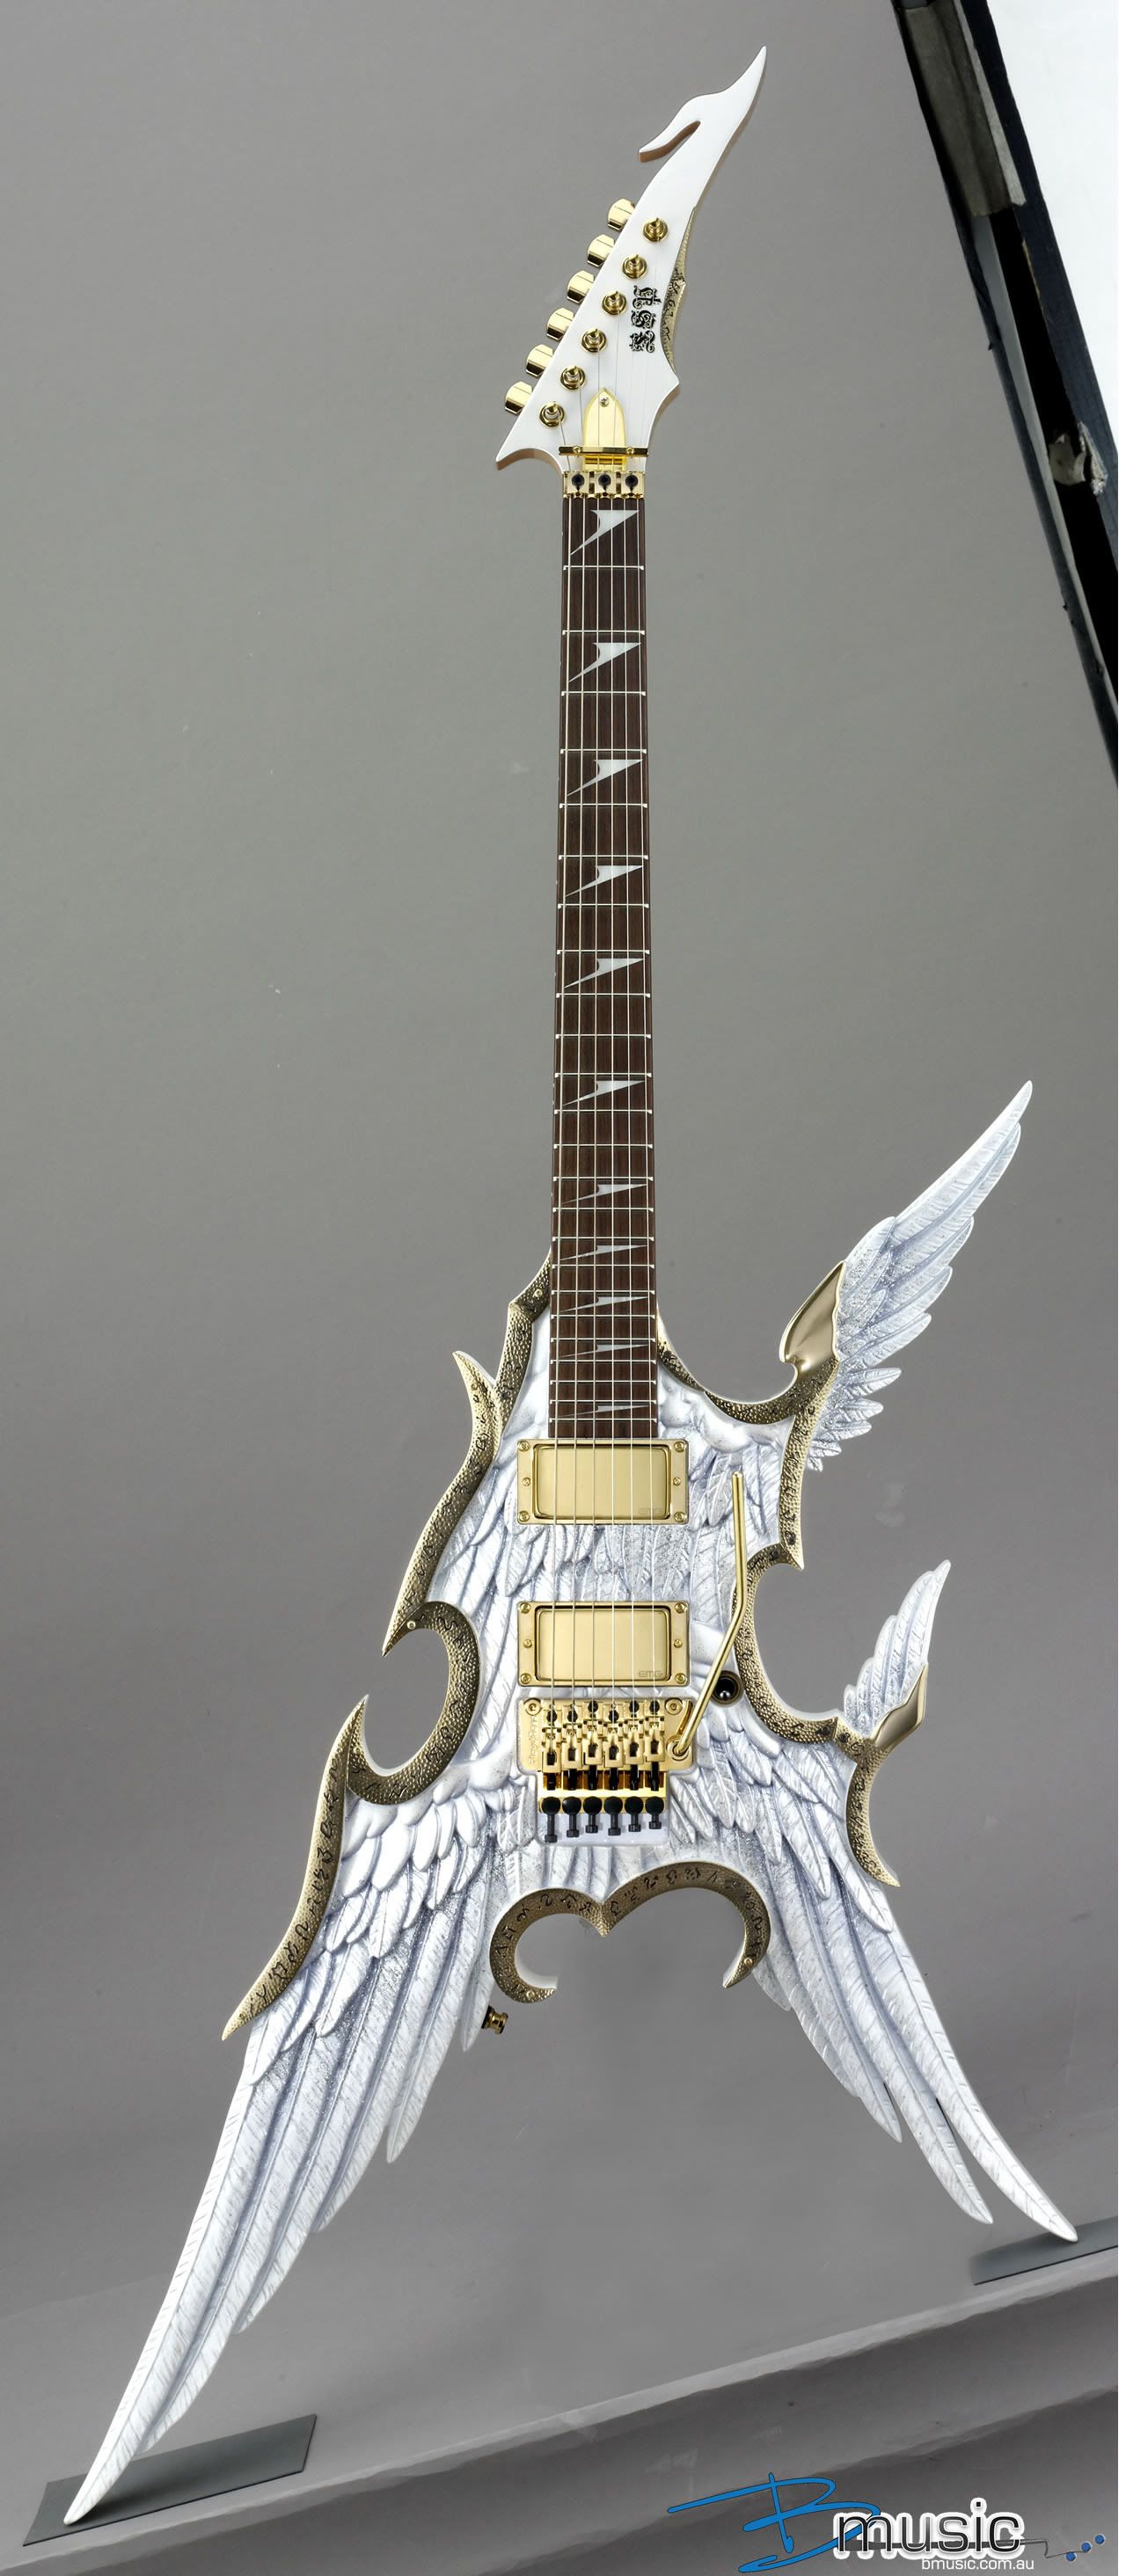 Someone forgot they were making a guitar ESP Takamizawa Angel Guitar Collection ly in Japan guitar Iconic Strings Pinterest